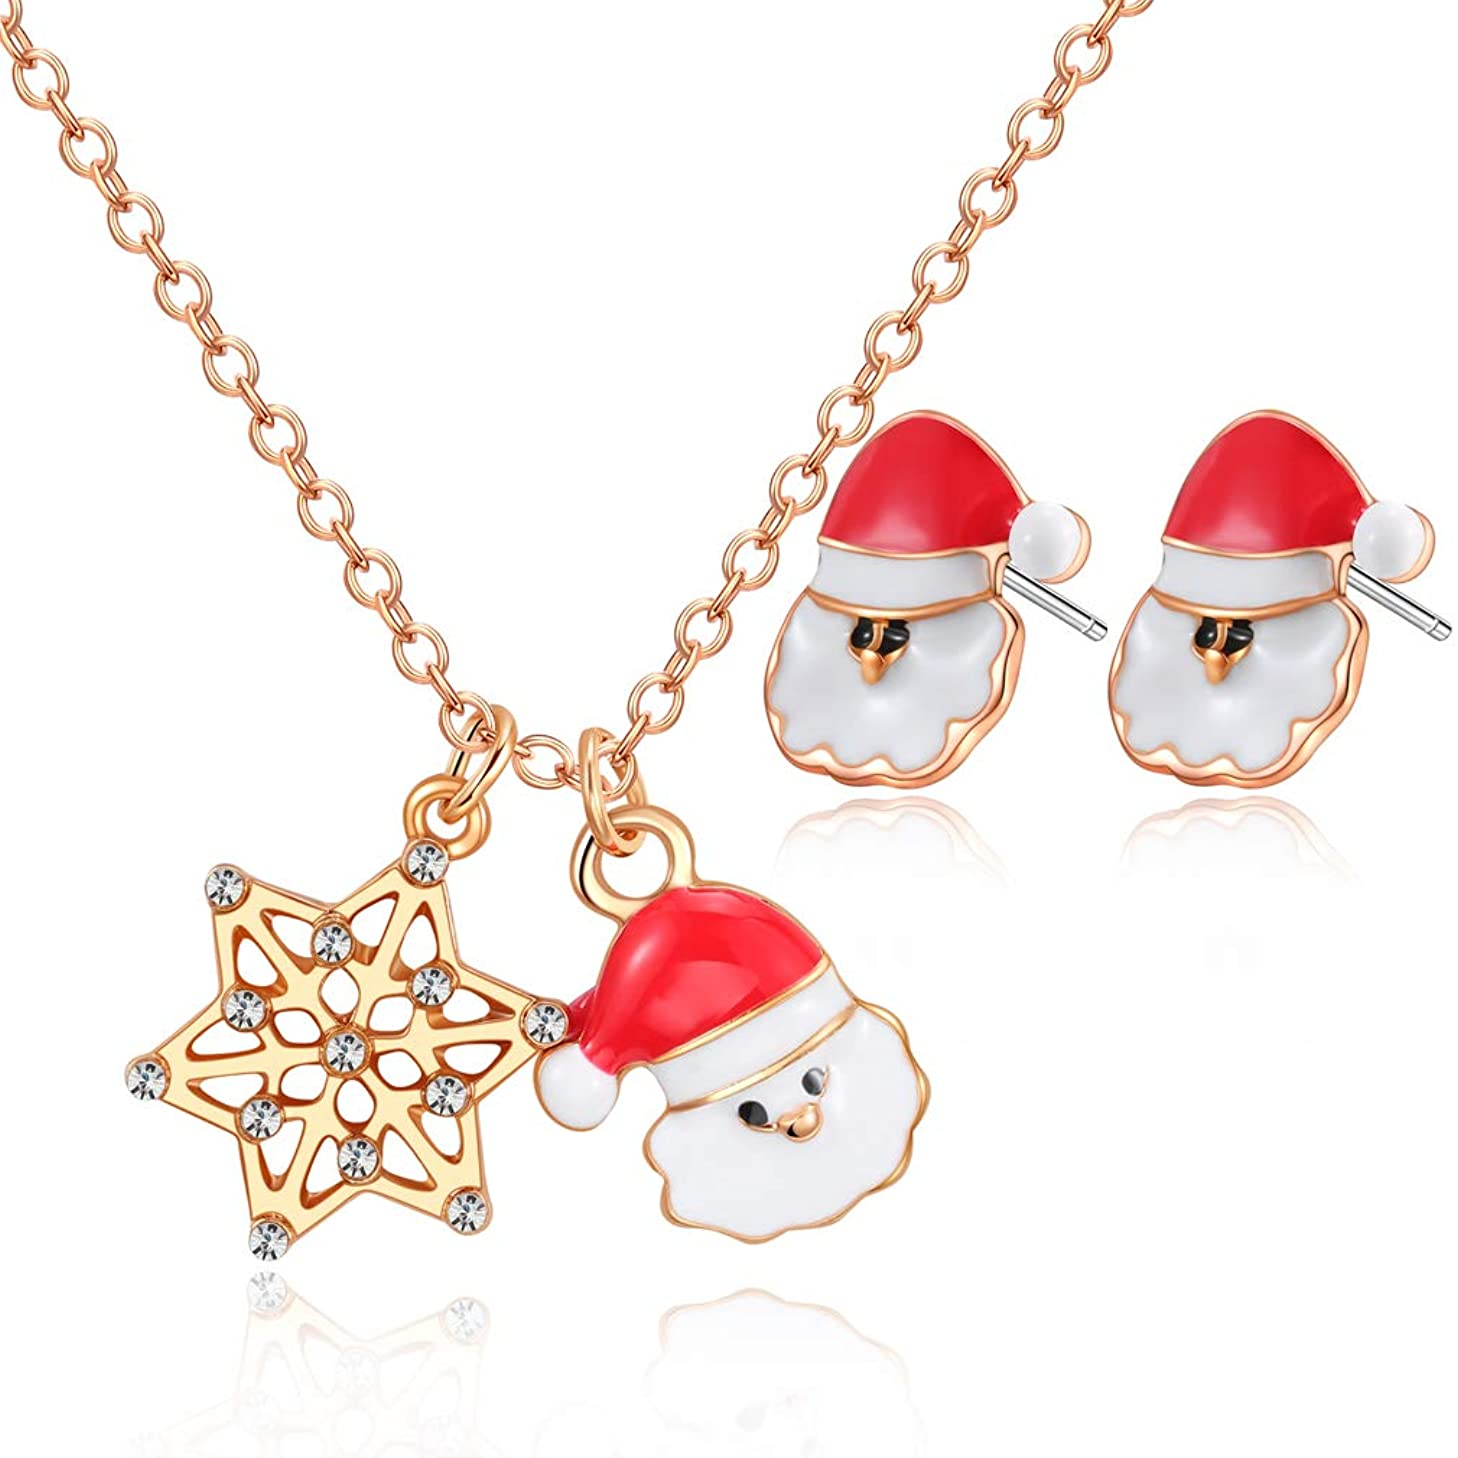 Santa Pendant Necklace set,14K Gold Plated Enamel Colors with earrings Set for Teen Girls, Christmas Advent Gift Necklace